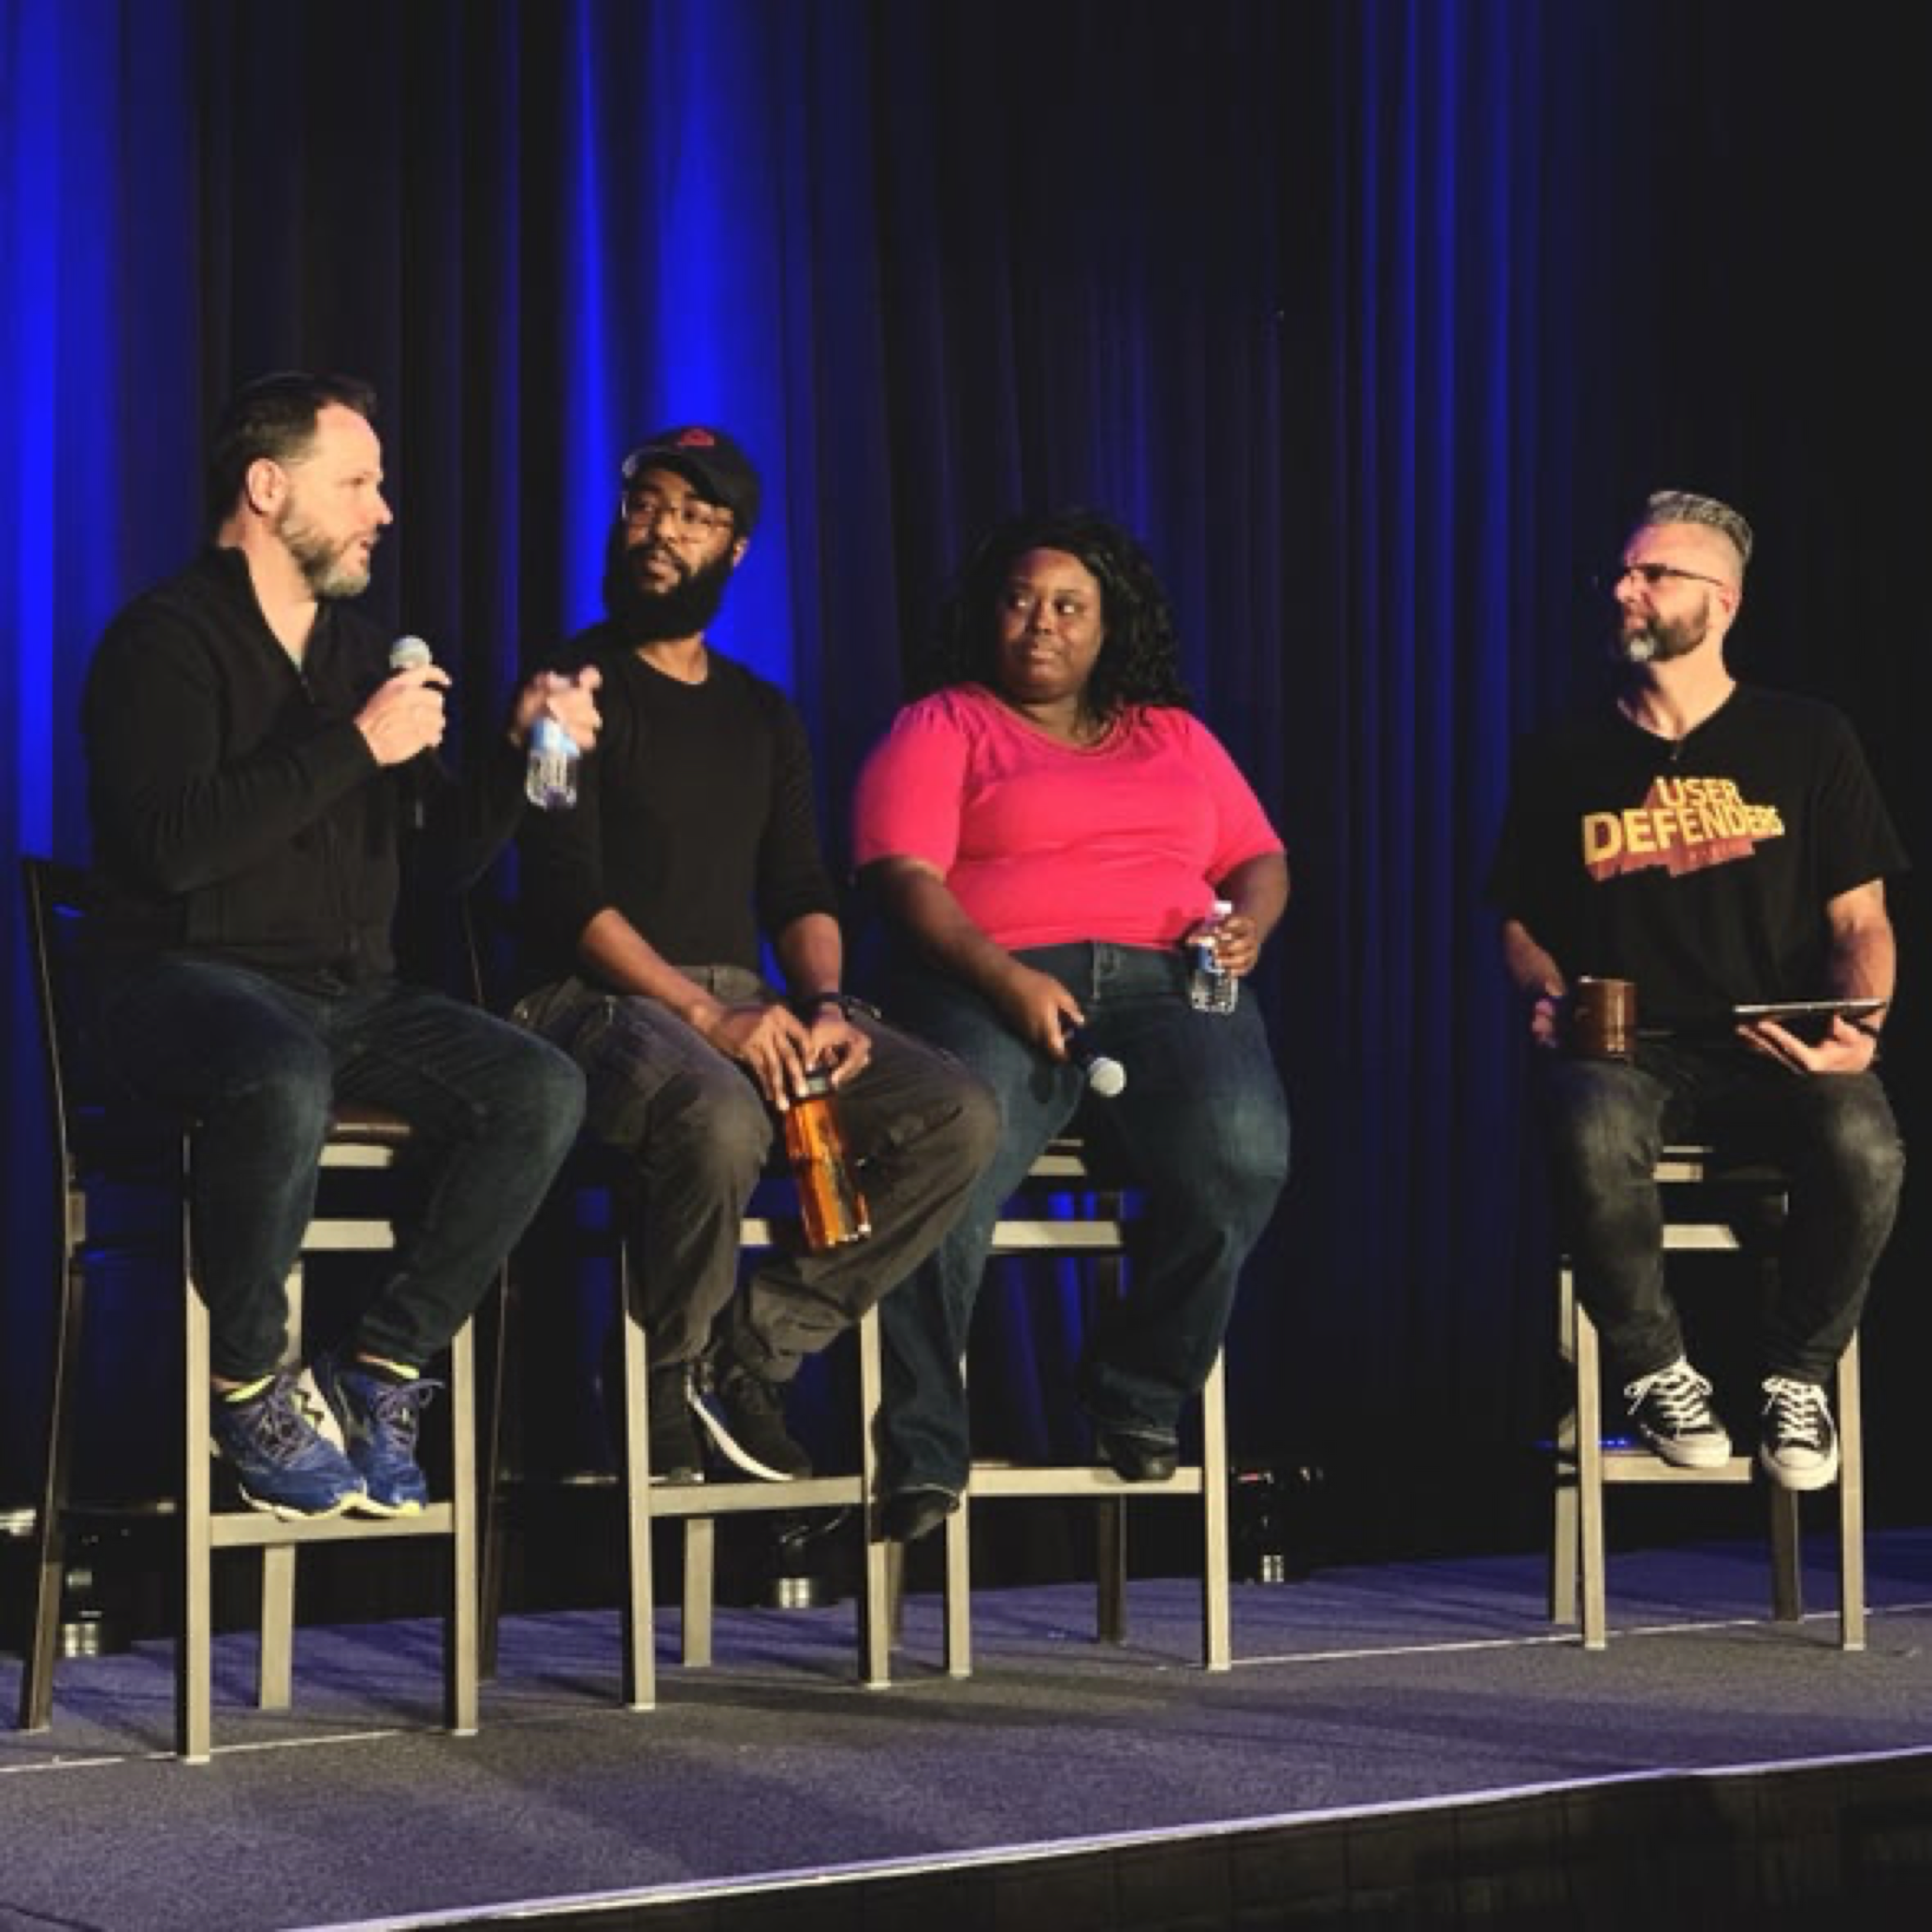 User Defenders Podcast live on stage at An Event Apart Denver. From Left to right, Derek Featherstone, Farai Madzima, Mina Markham and Jason Ogle sitting on stage on stools with a blue curtain backdrop. Photo courtesy of Jeffrey Zeldman